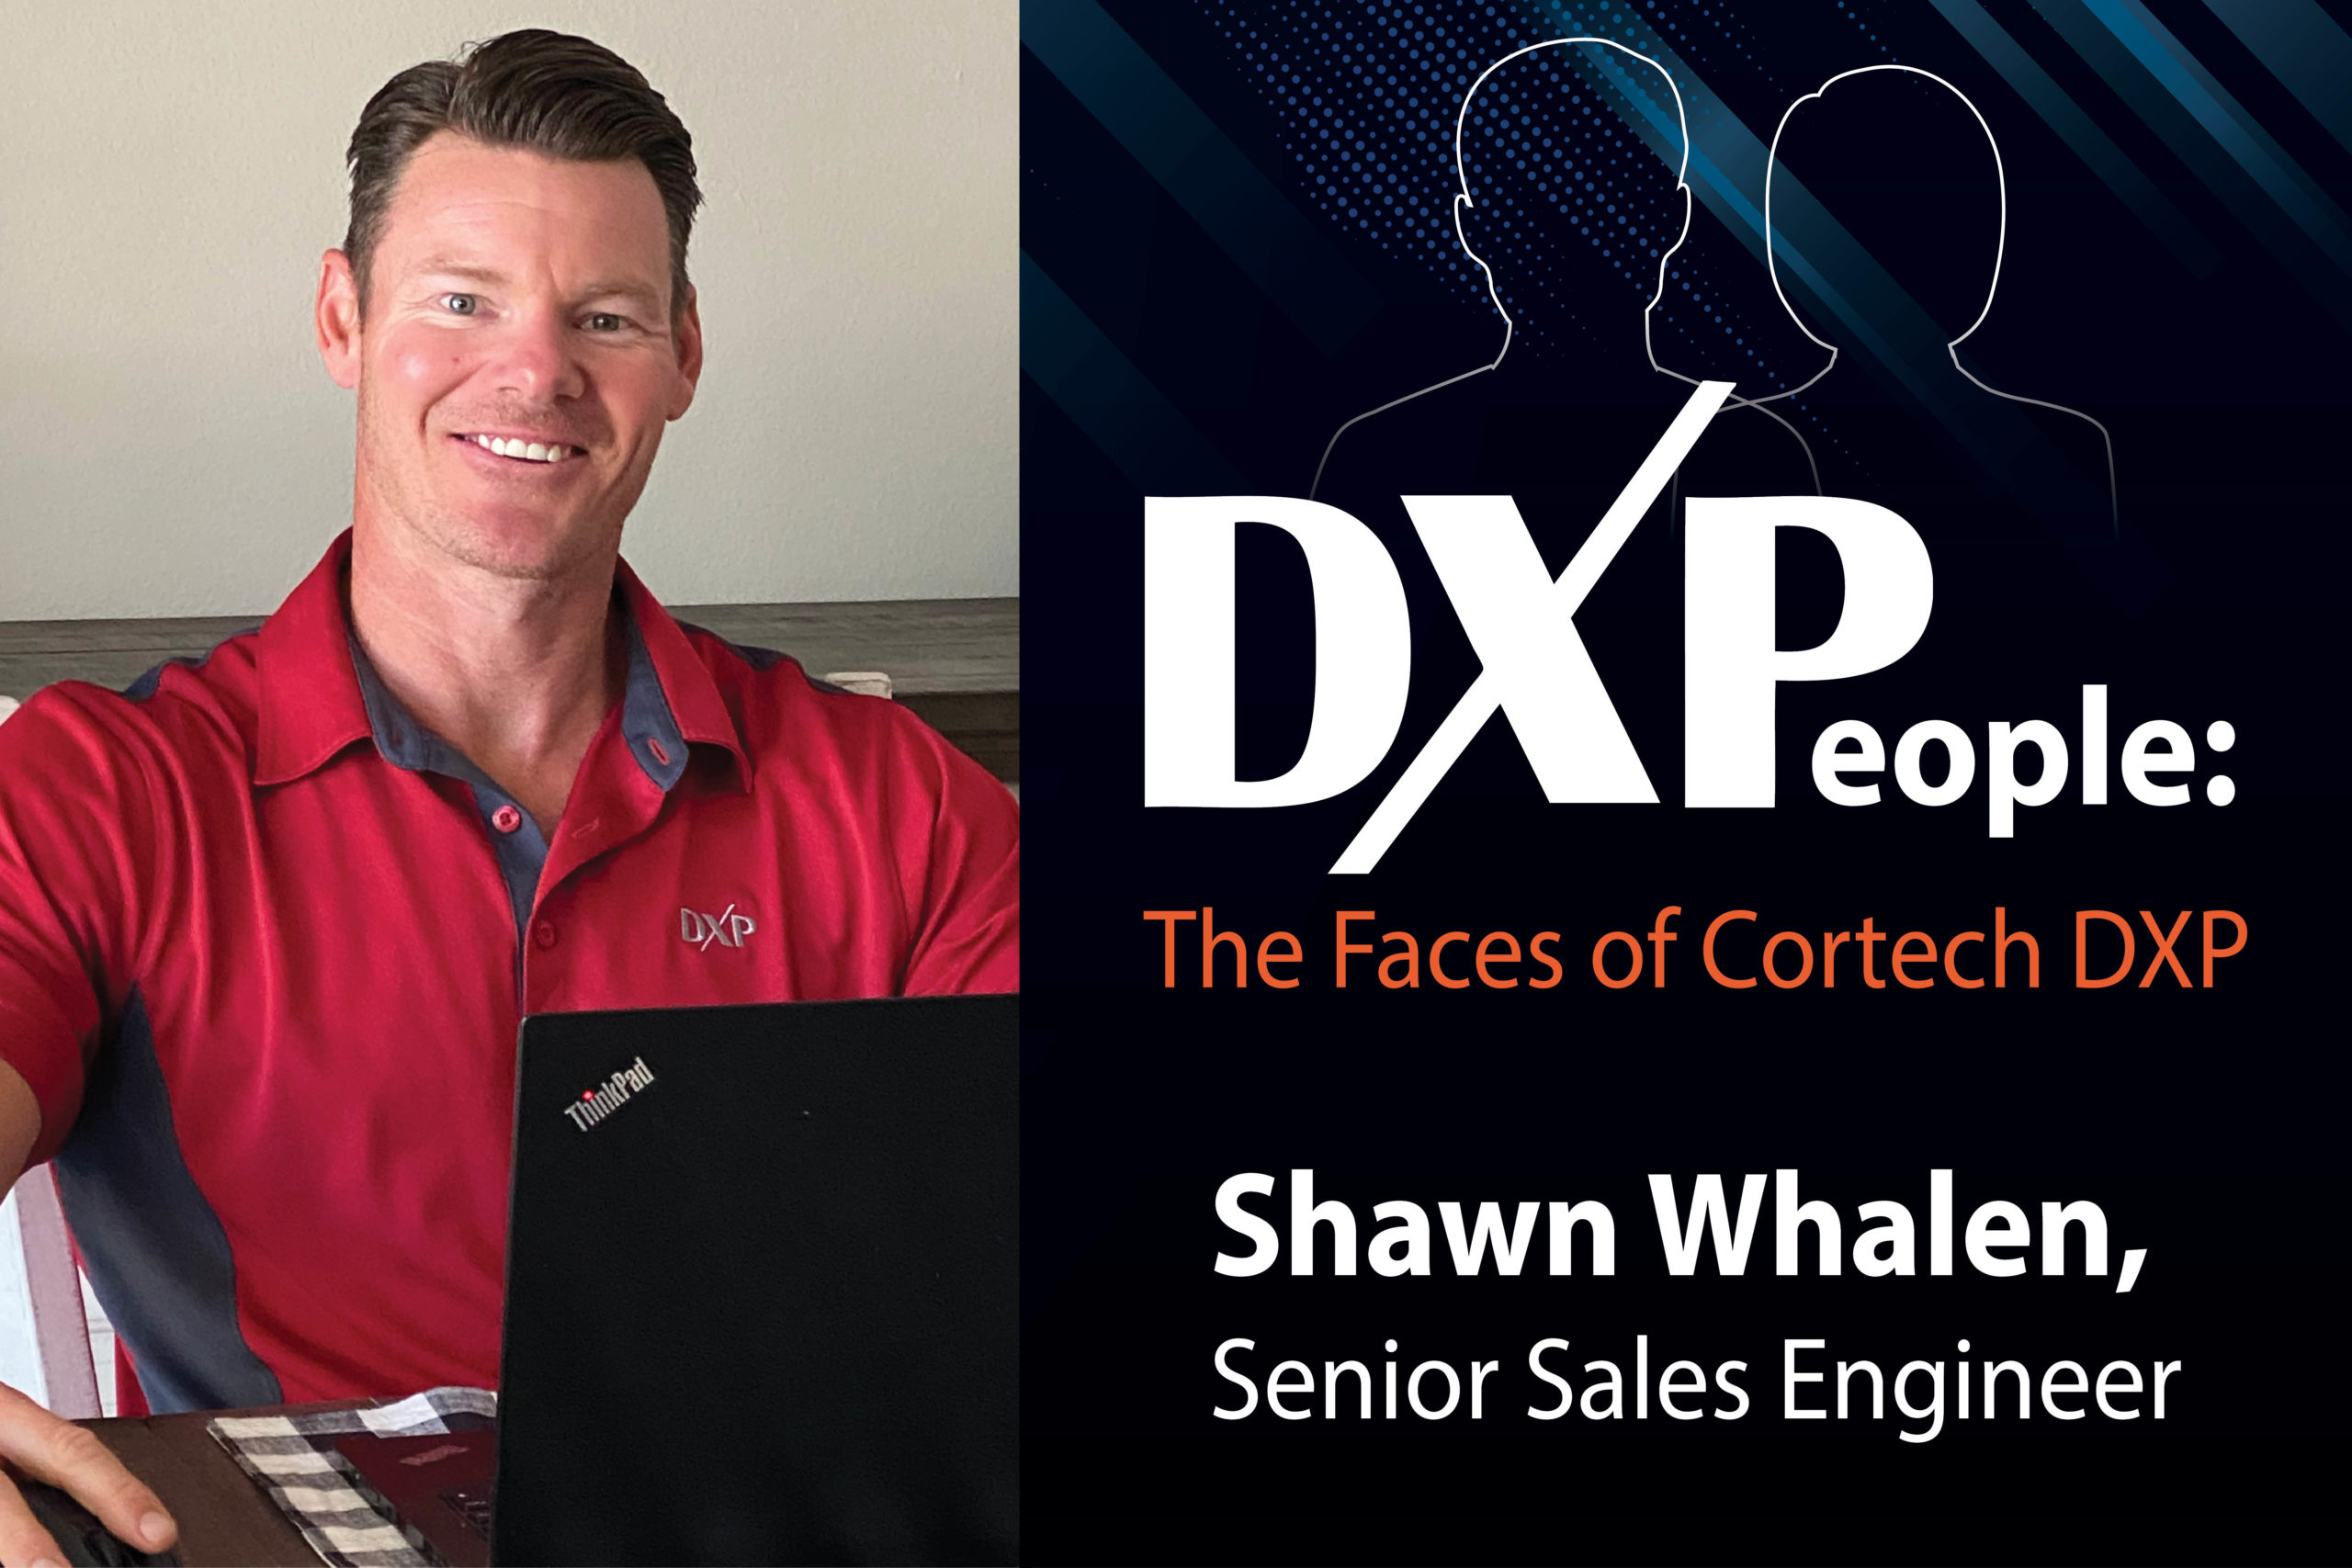 The Faces of DXP Cortech <br> Shawn Whalen, Senior Sales Engineer